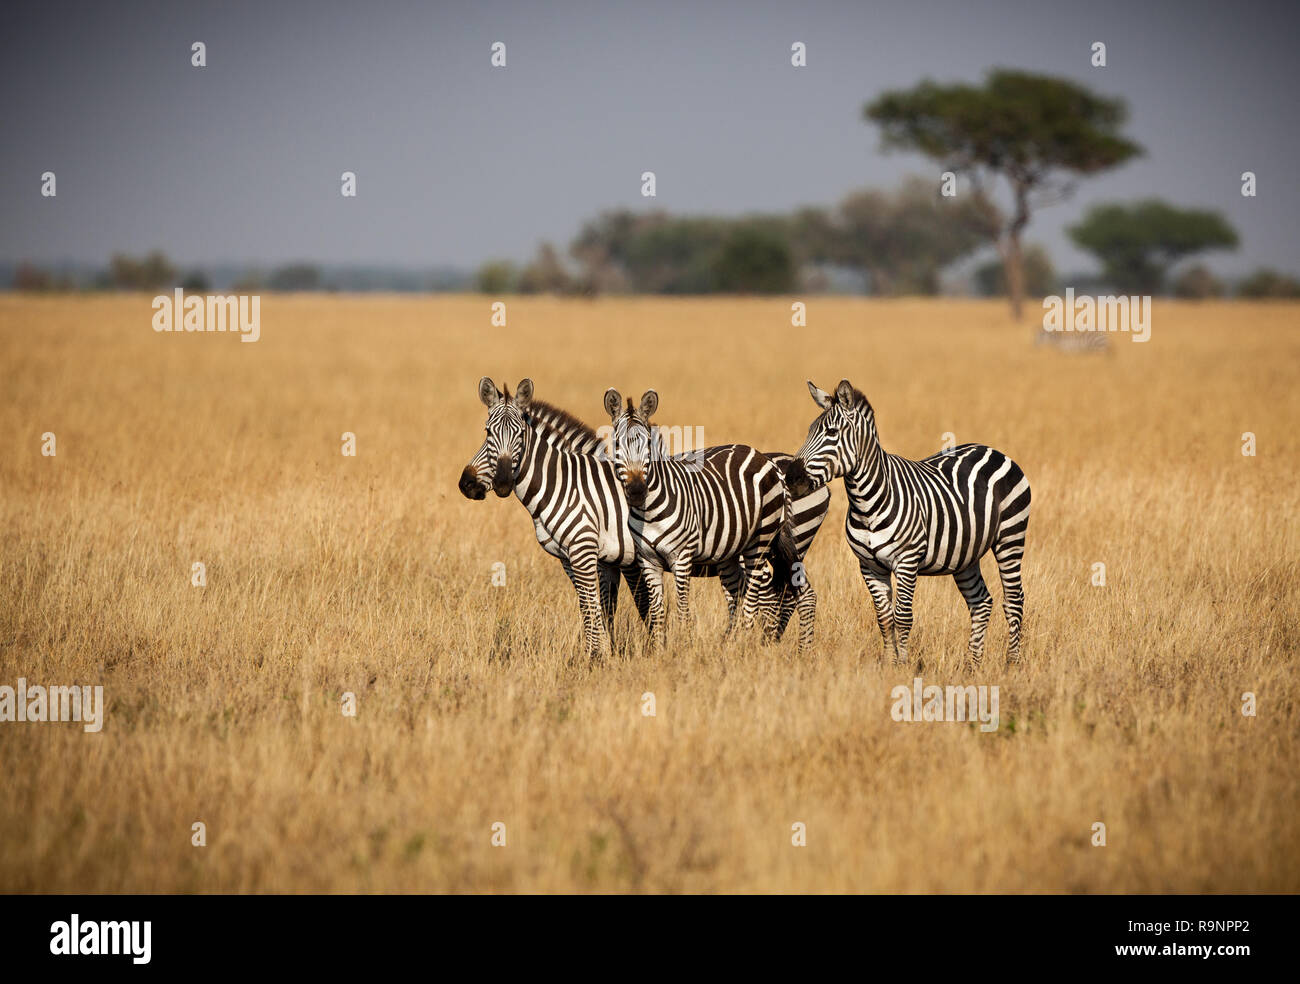 Small herd of Zebras standing close for protection - Stock Image